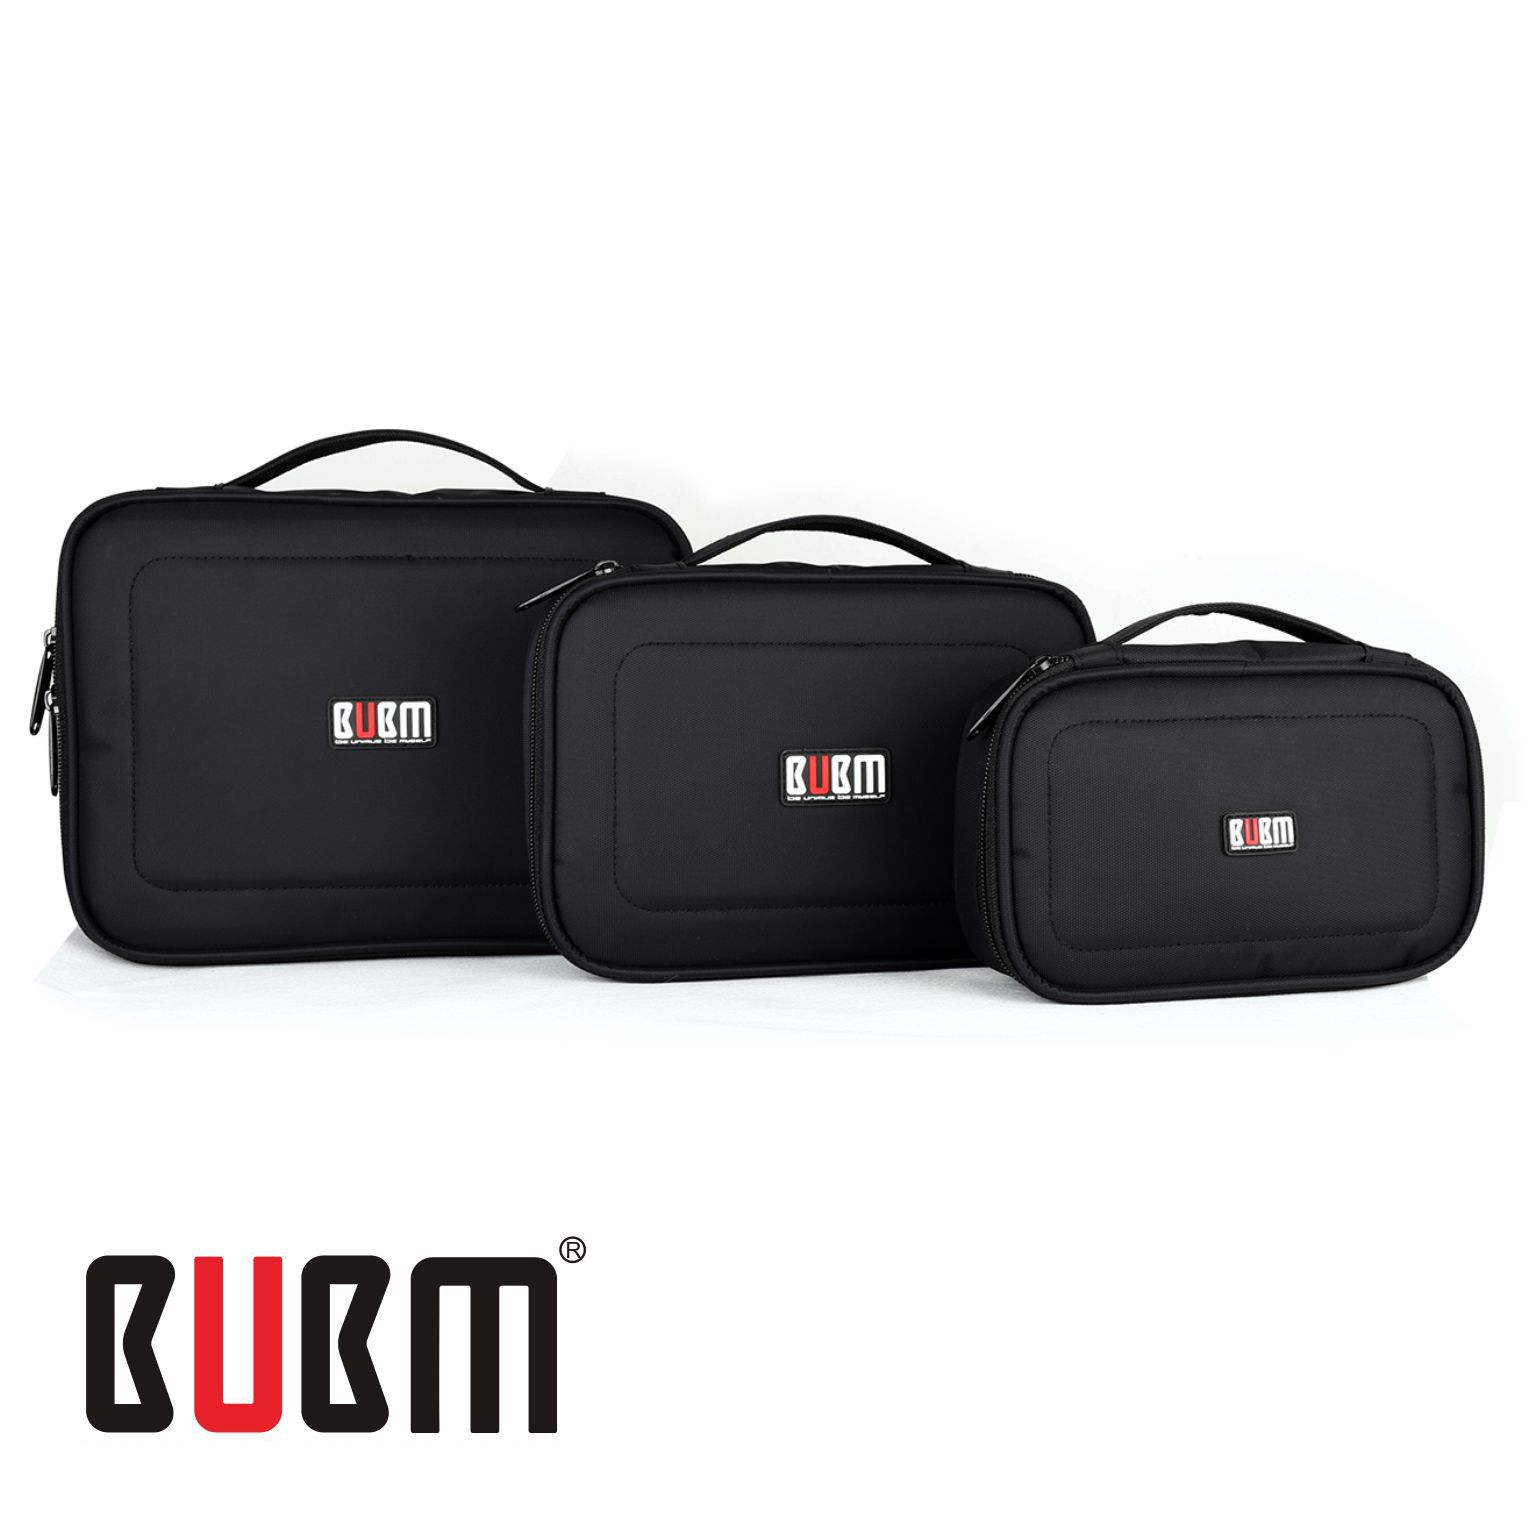 BUBM 3 Pcs/Set Black Waterproof Portable Travel Organizer Case Functional Cosmetic Bag For iPad Mini iPhone Gopro Camera